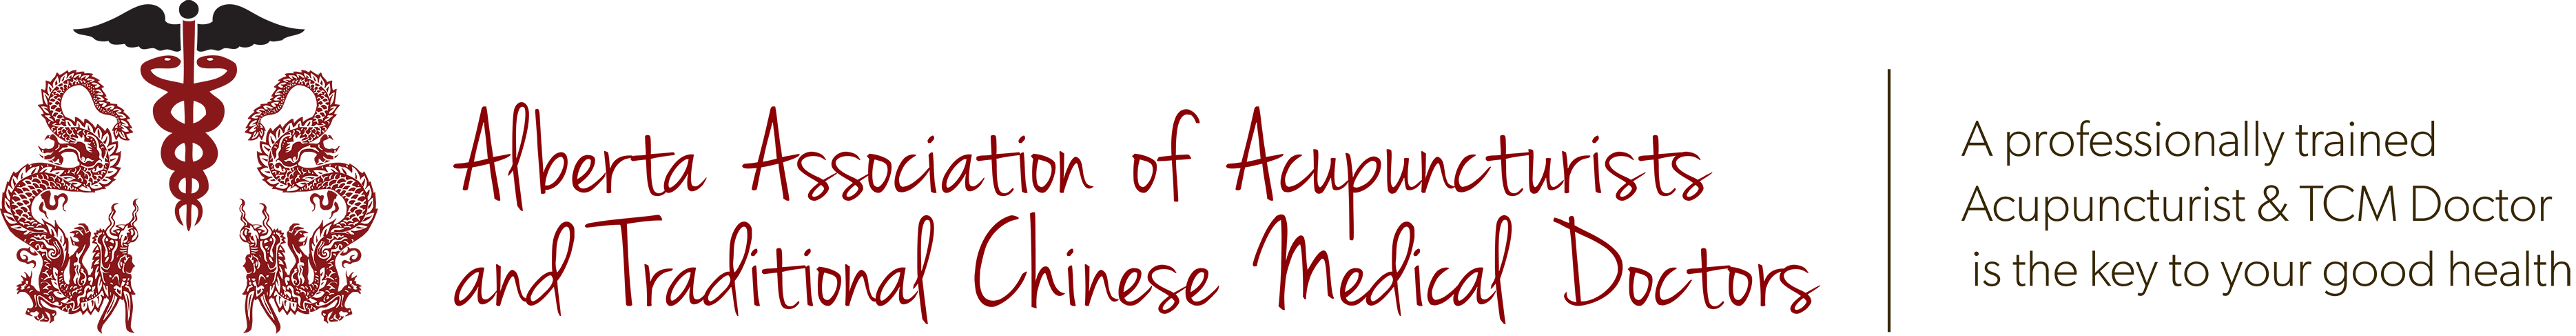 Alberta  Association  of  Acupuncturists  and  Traditional  Chinese  Medical  Doctors